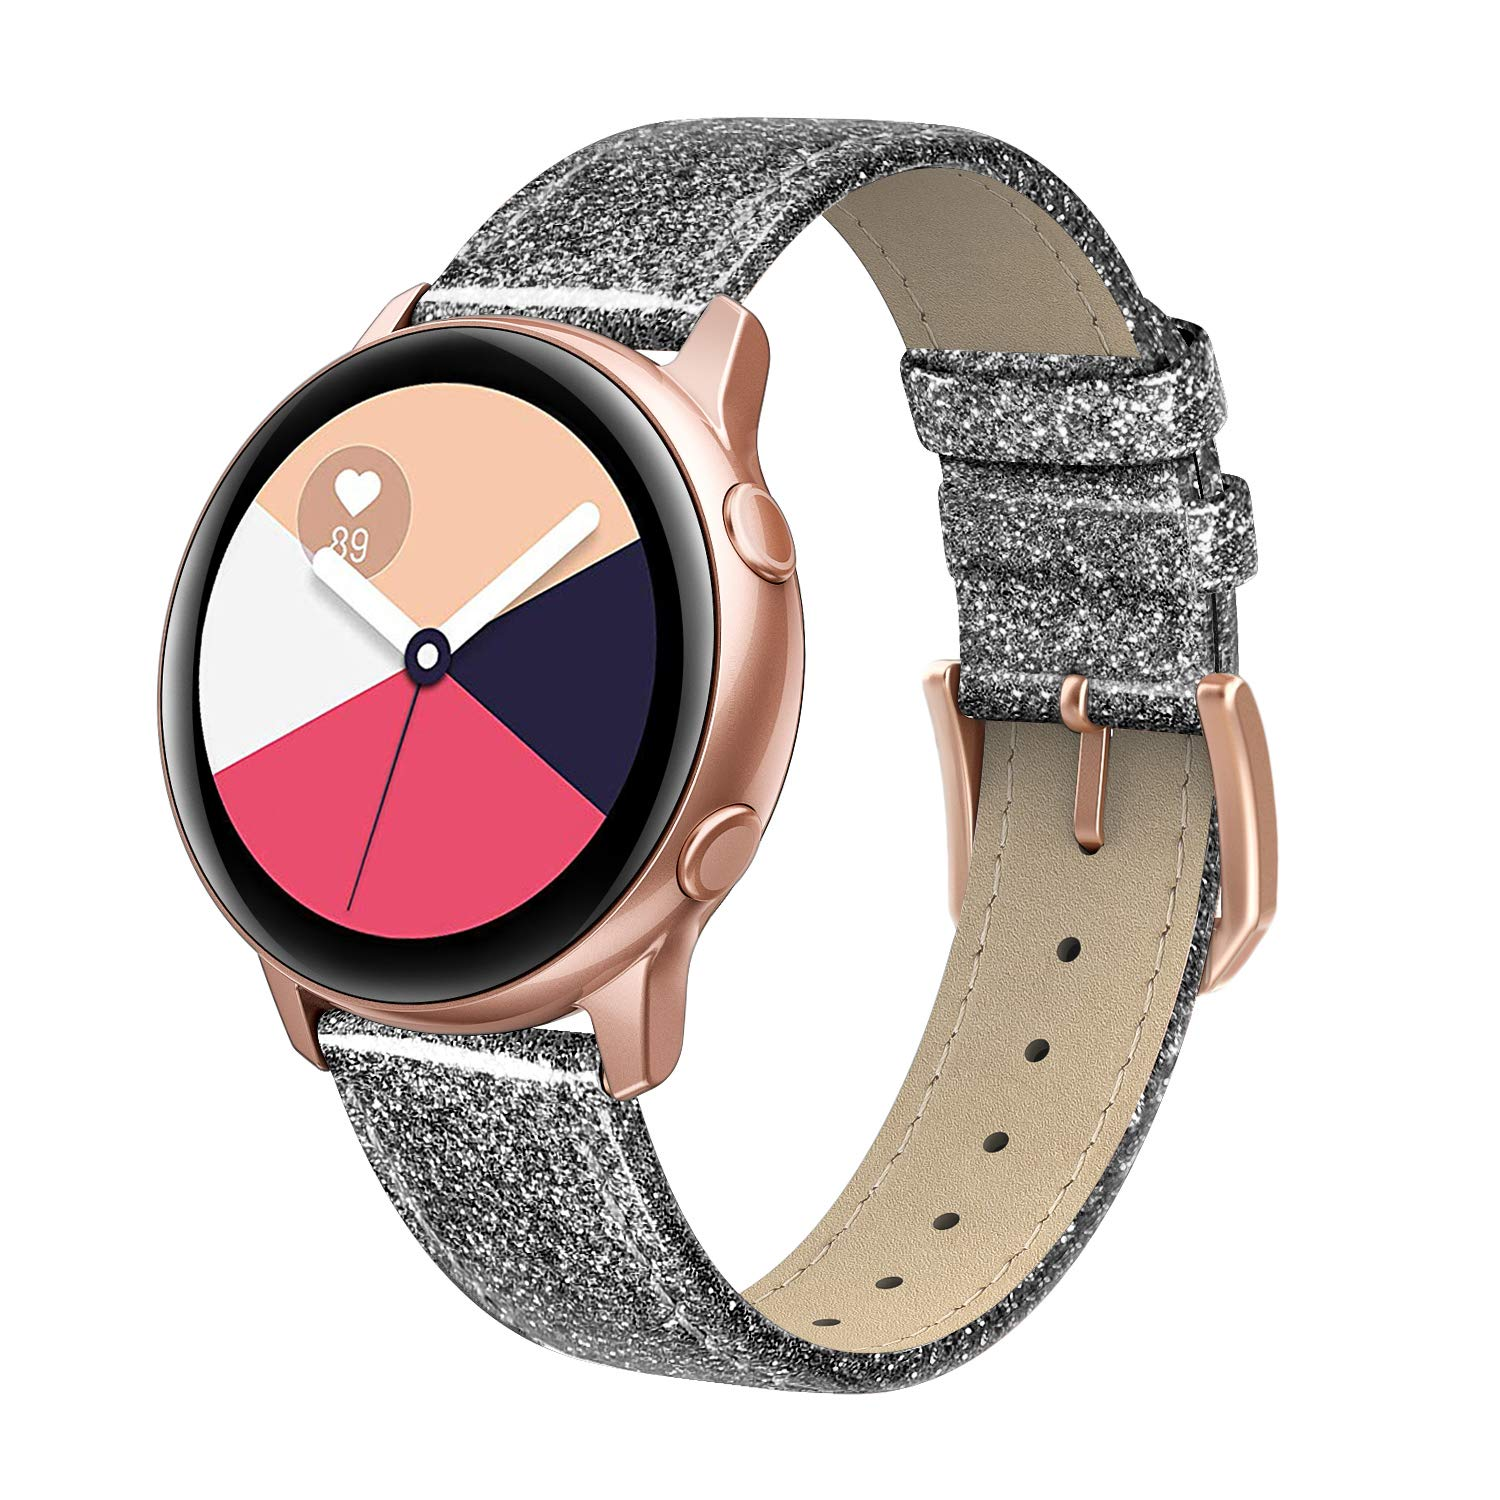 Malla para reloj Samsung Galaxy Watch Active 40mm glitter